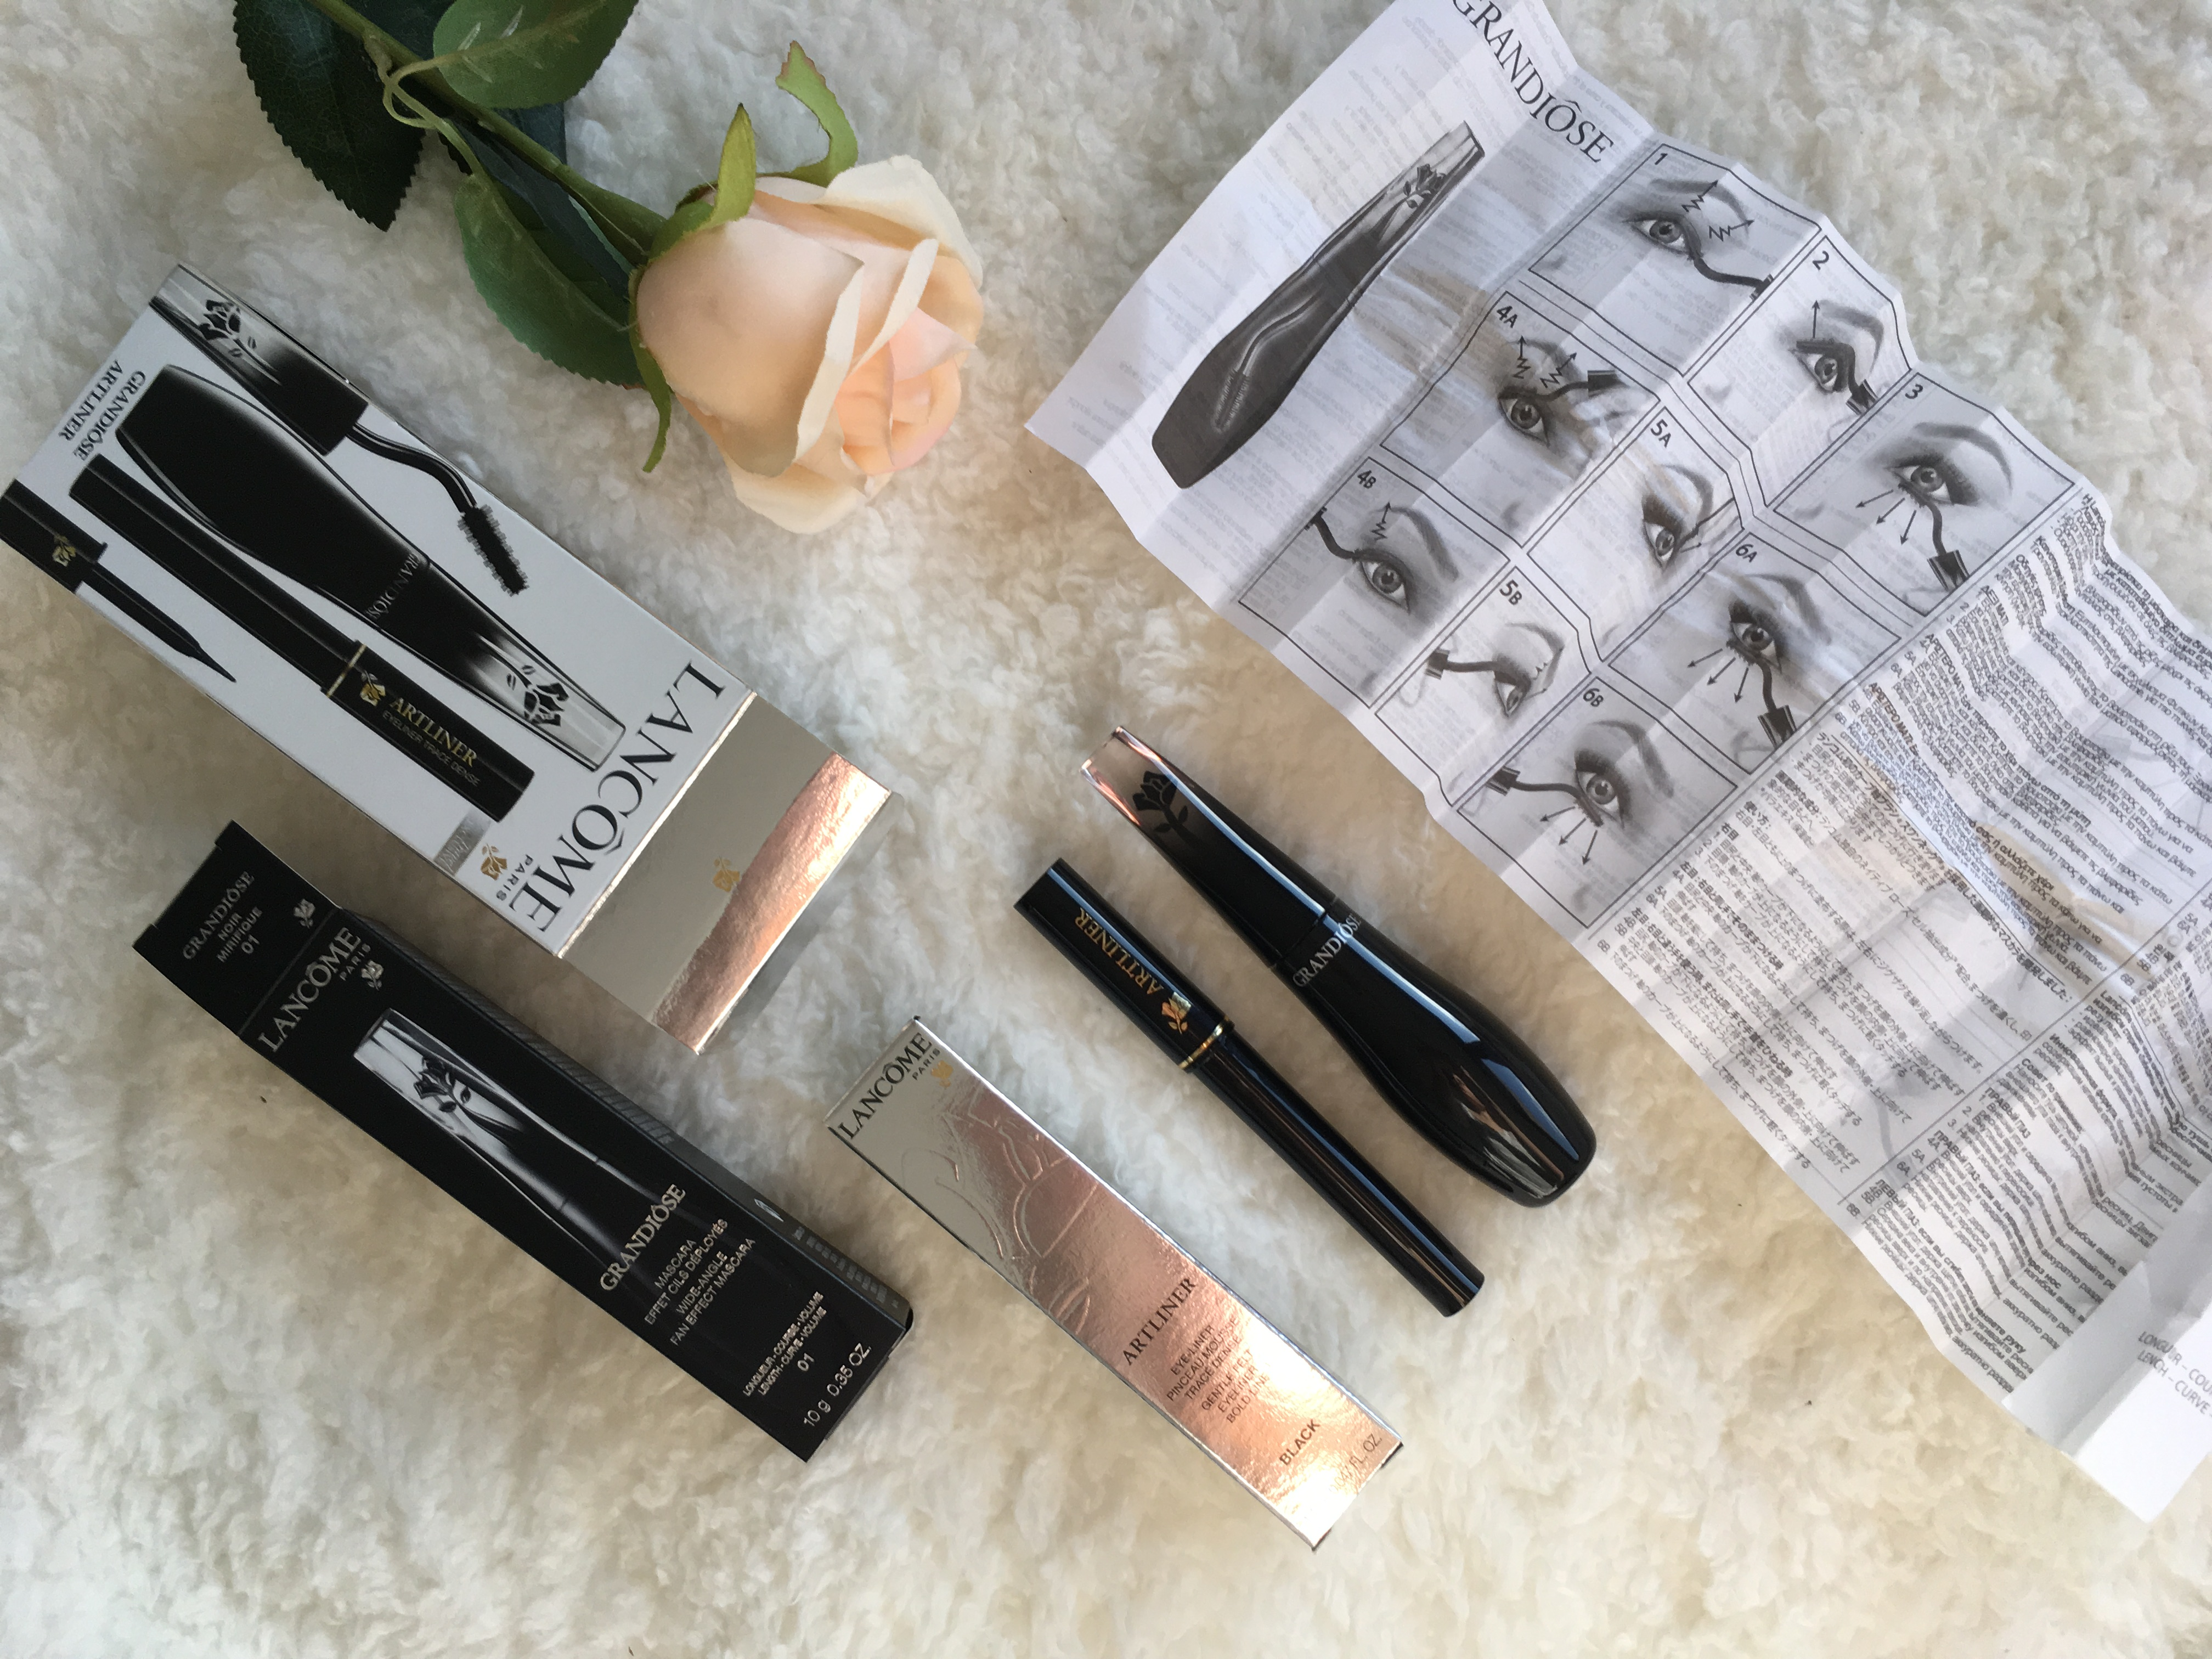 1-lancome-grandiose-mascara-review-and-swatch-365-beauty-tips